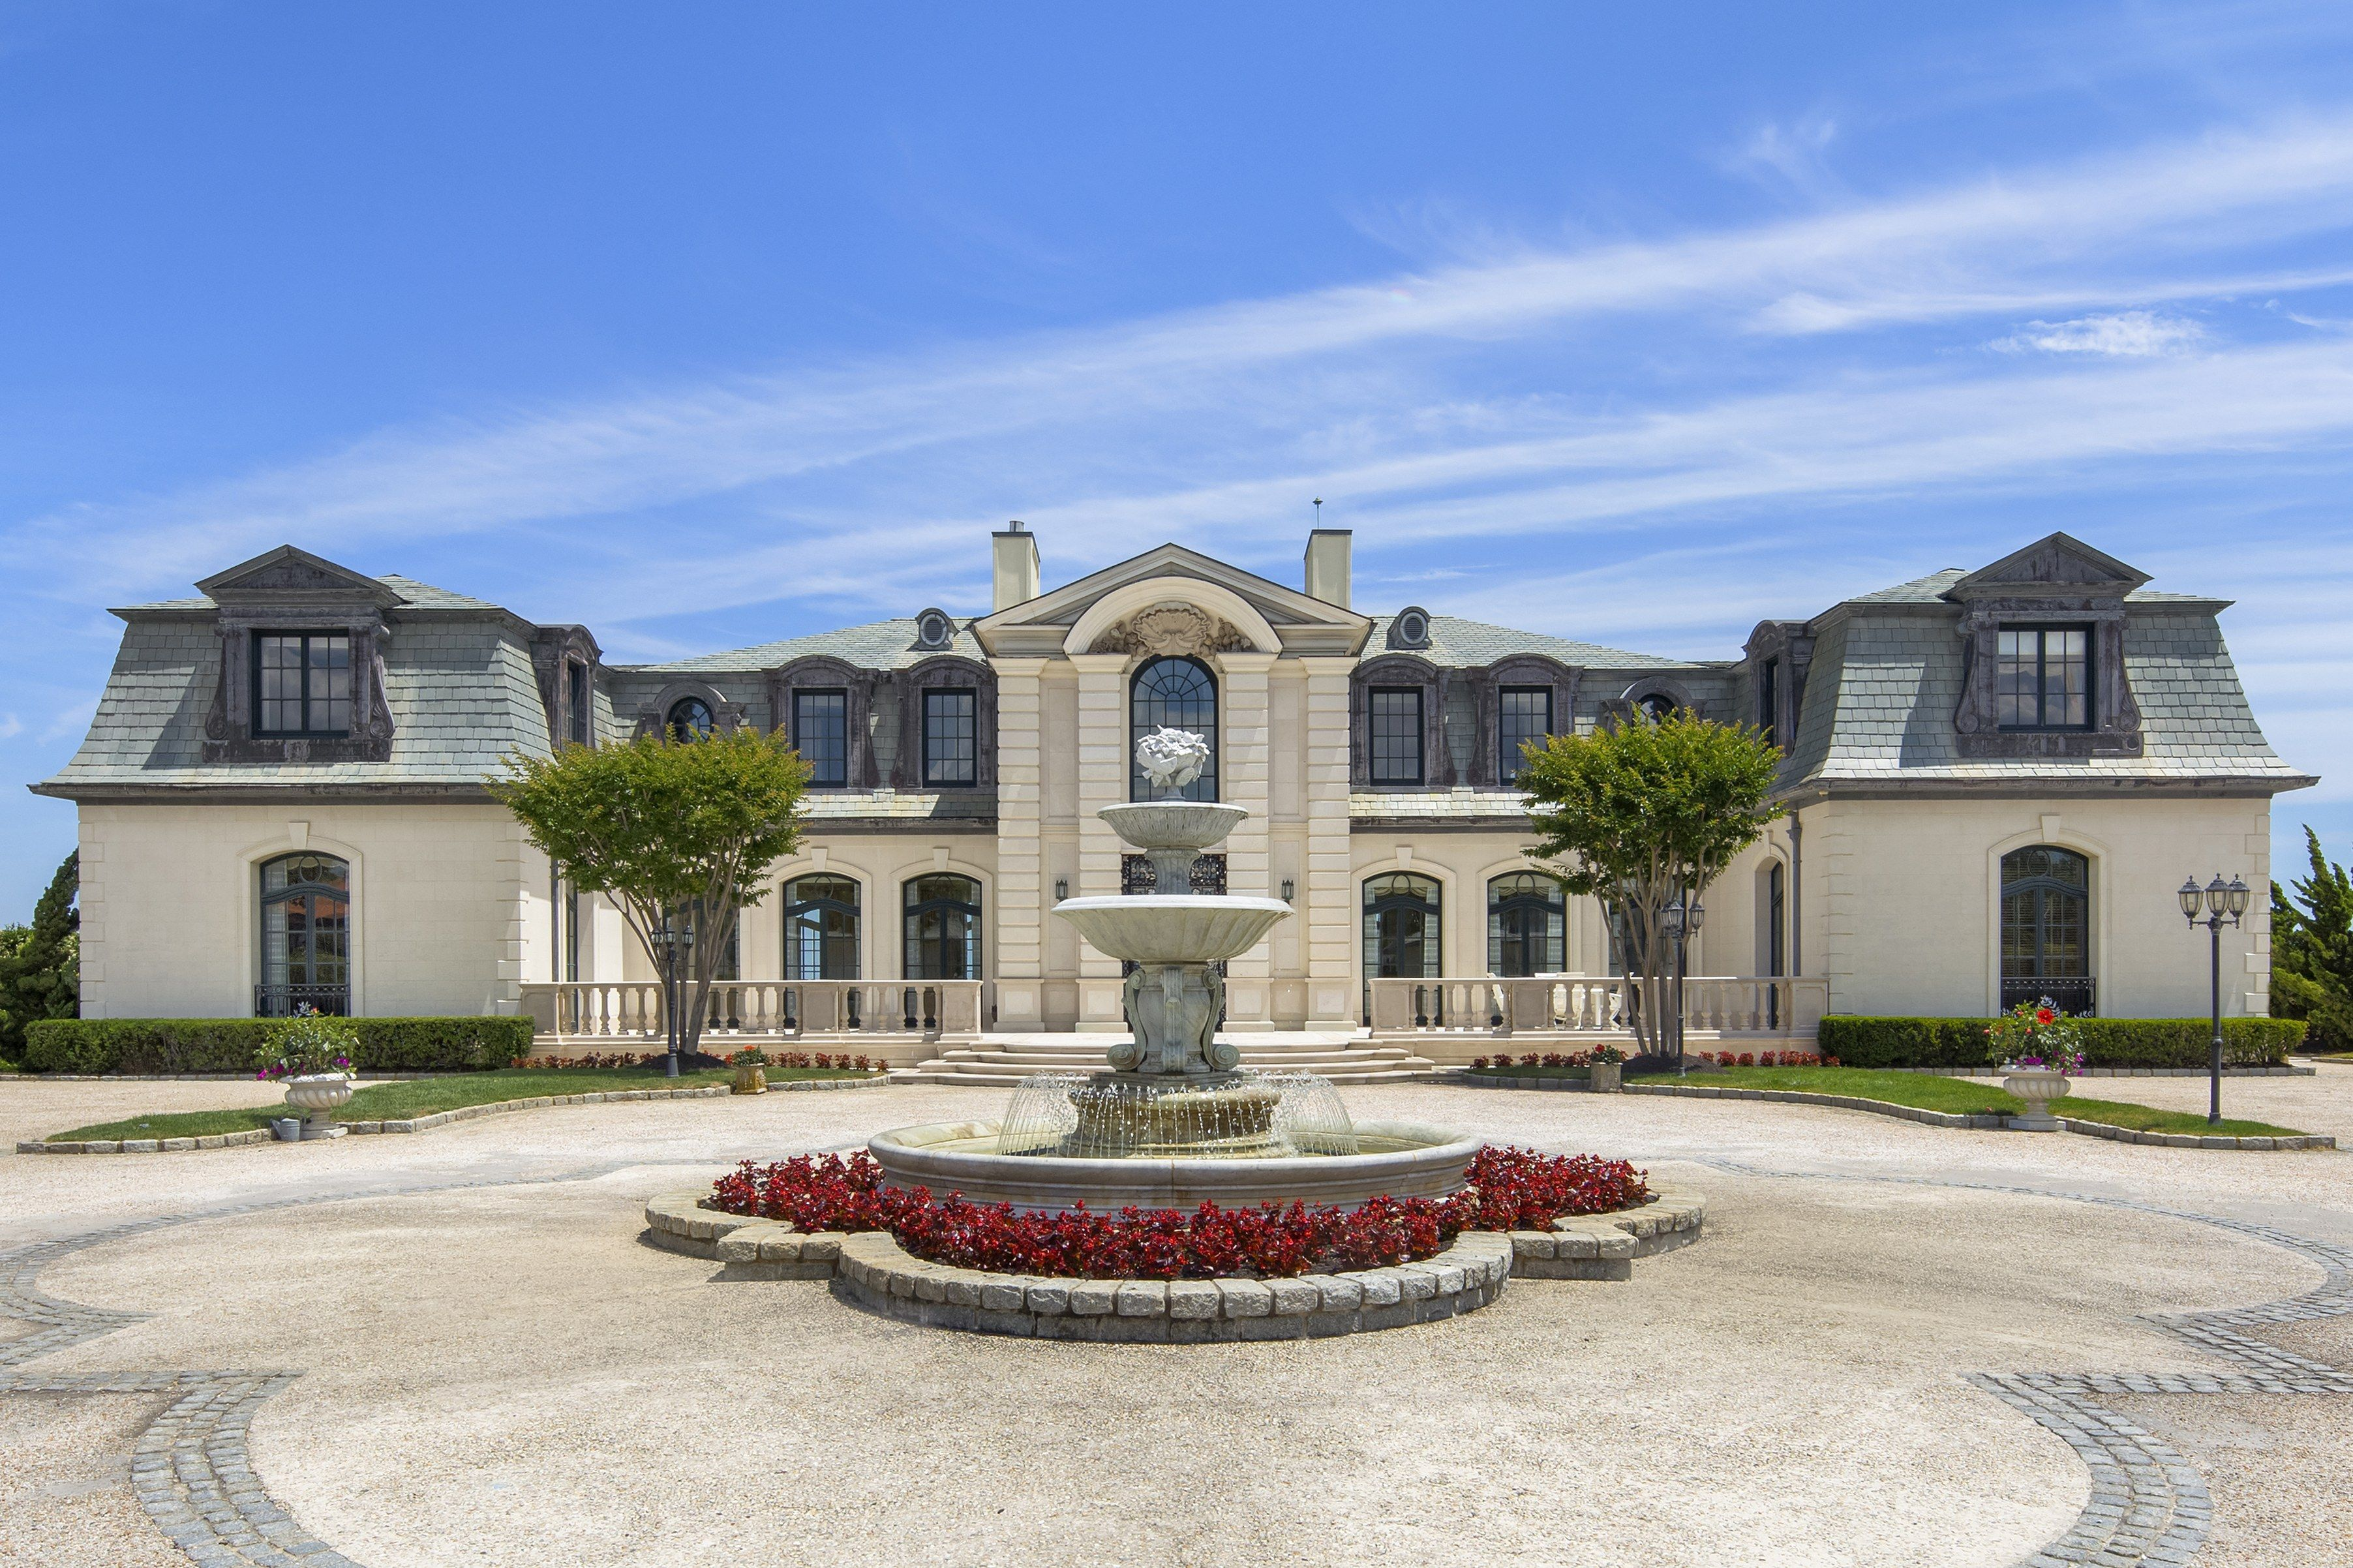 Tour A 39 Million French Chateau On The Jersey Shore French Chateau Mansions Homes Mansions